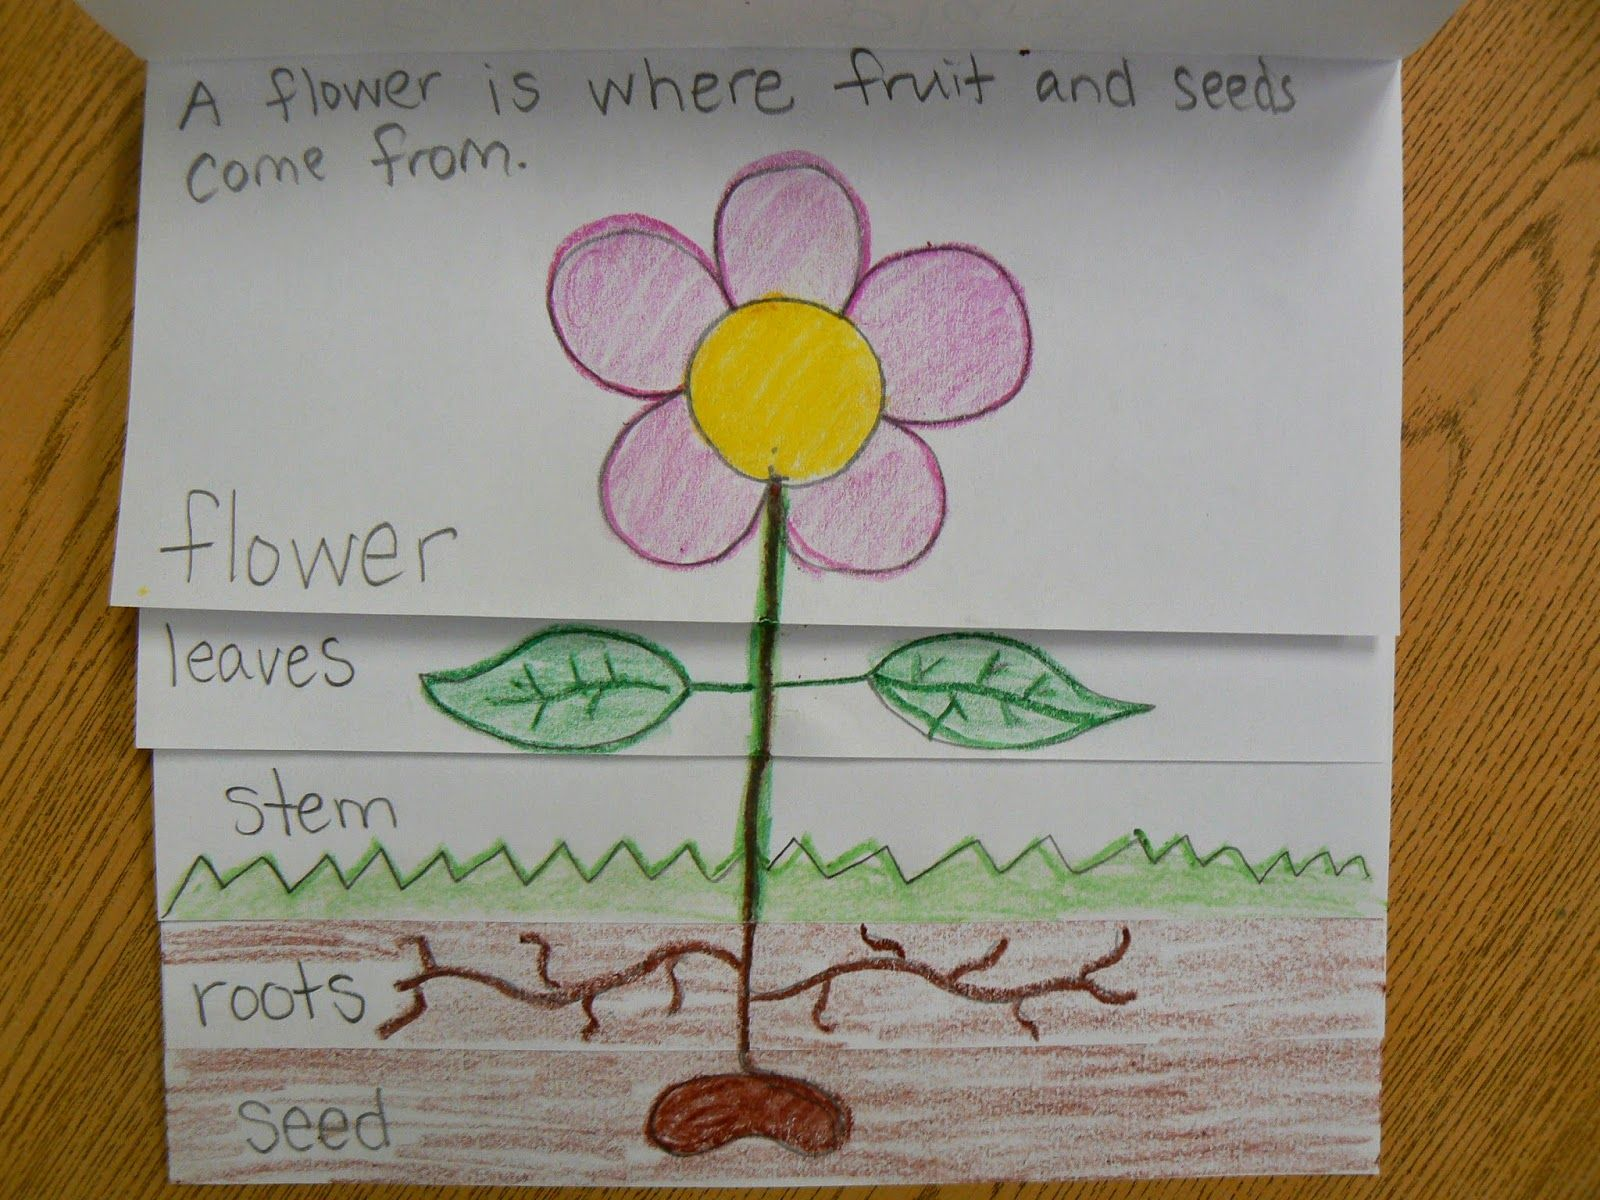 flower diagram career 69 mustang ignition wiring plant parts flip book mrs t 39s first grade class